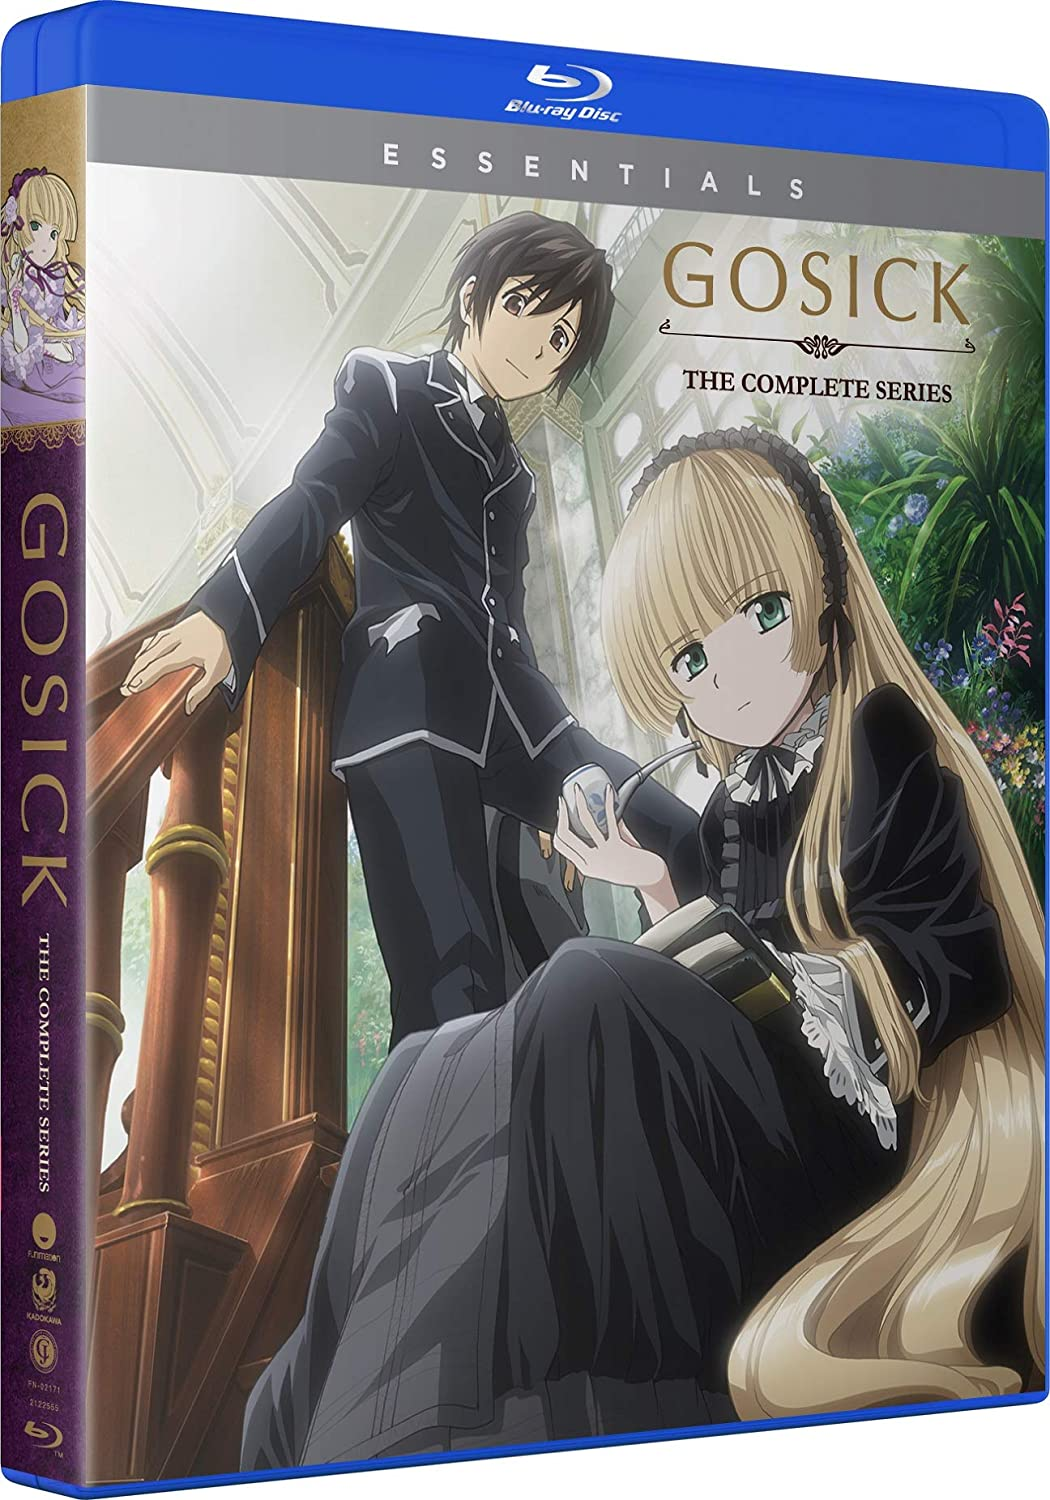 Gosick Complete Series Essentials Blu-ray (Dual Audio)